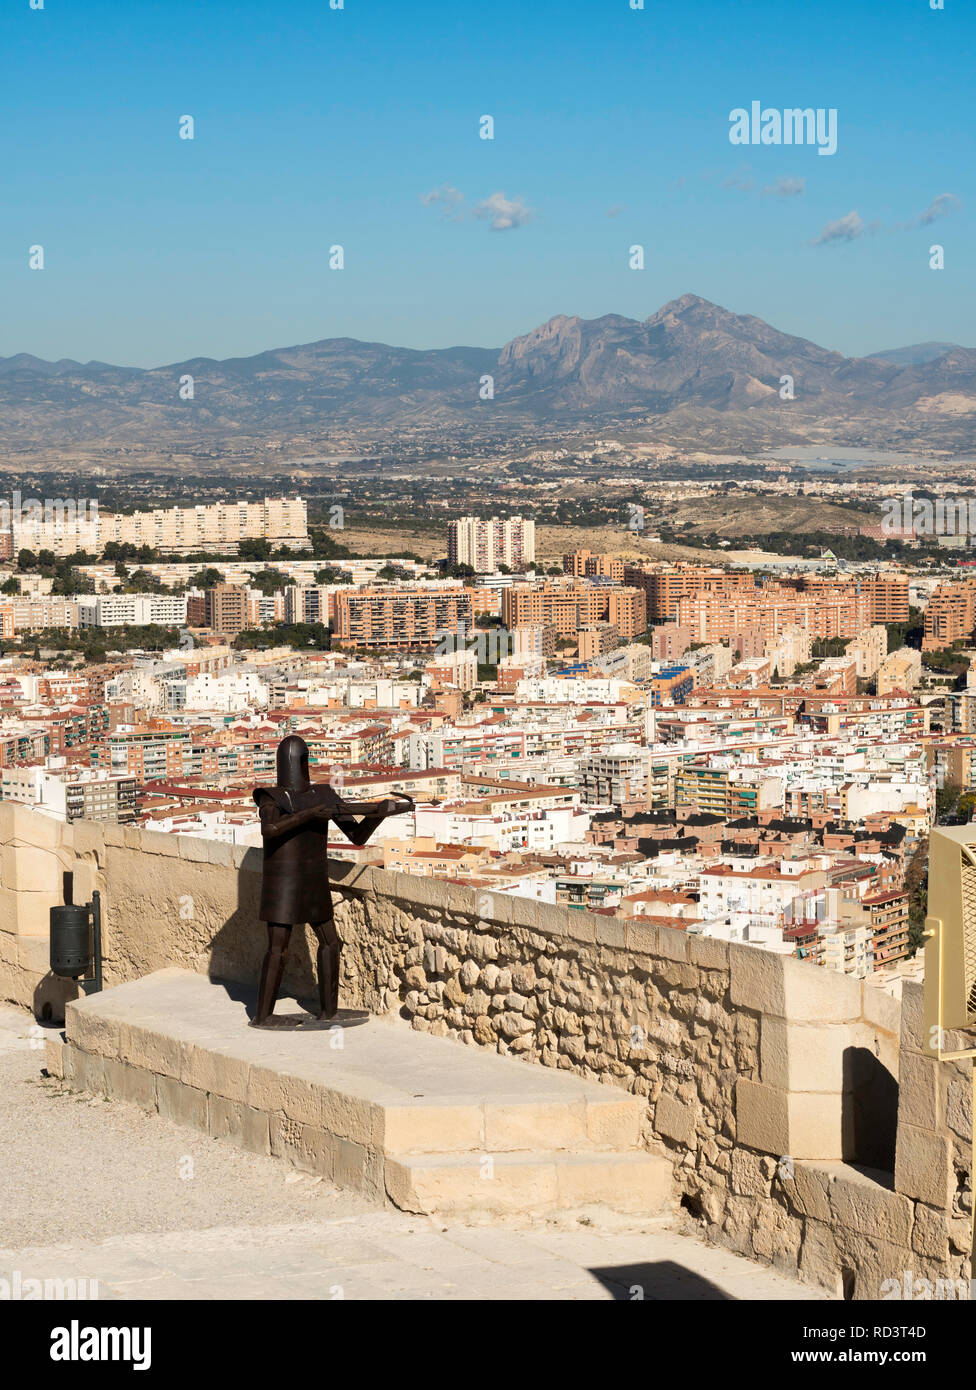 A steel sculpture of a medieval soldier firing a crossbow on the ramparts of Alicante castle, Spain, Europe - Stock Image